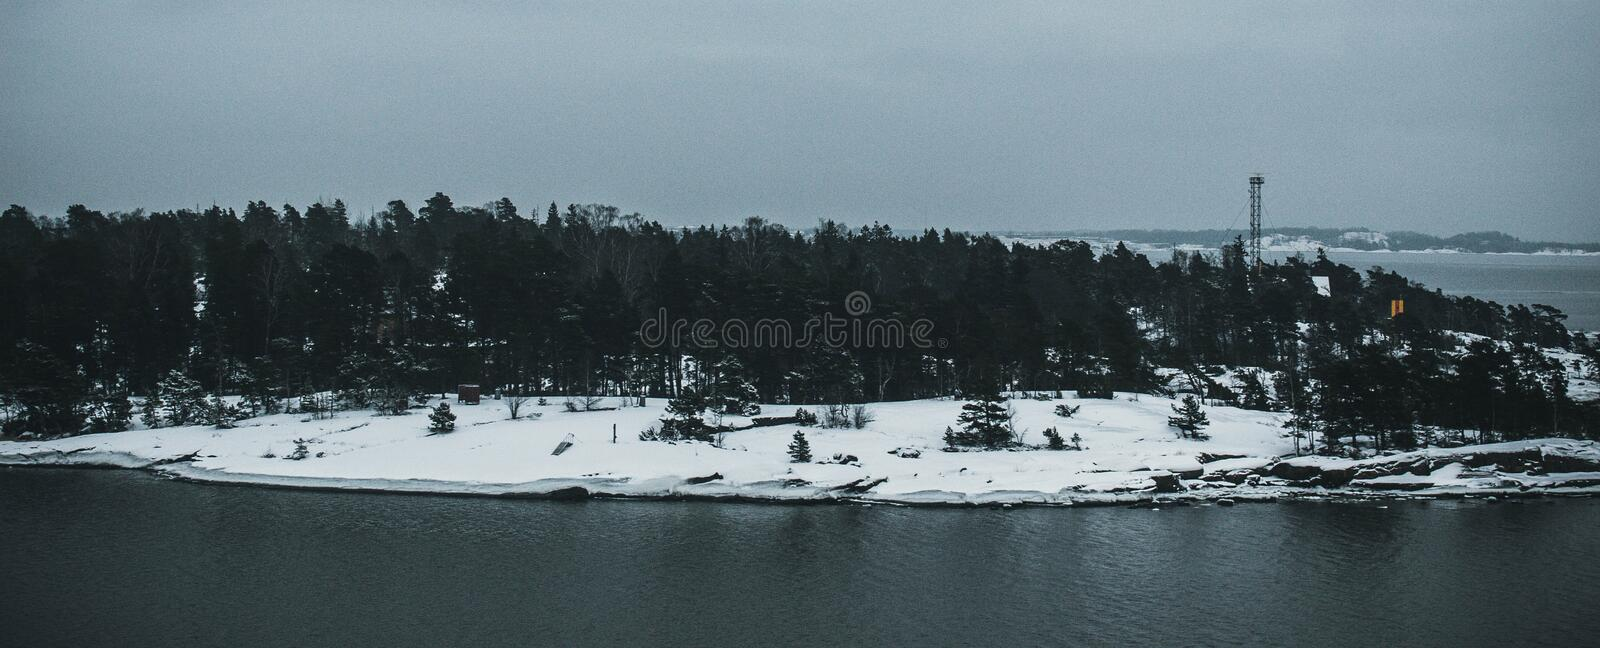 Photo Of Trees Near Body Of Water During Winter royalty free stock image